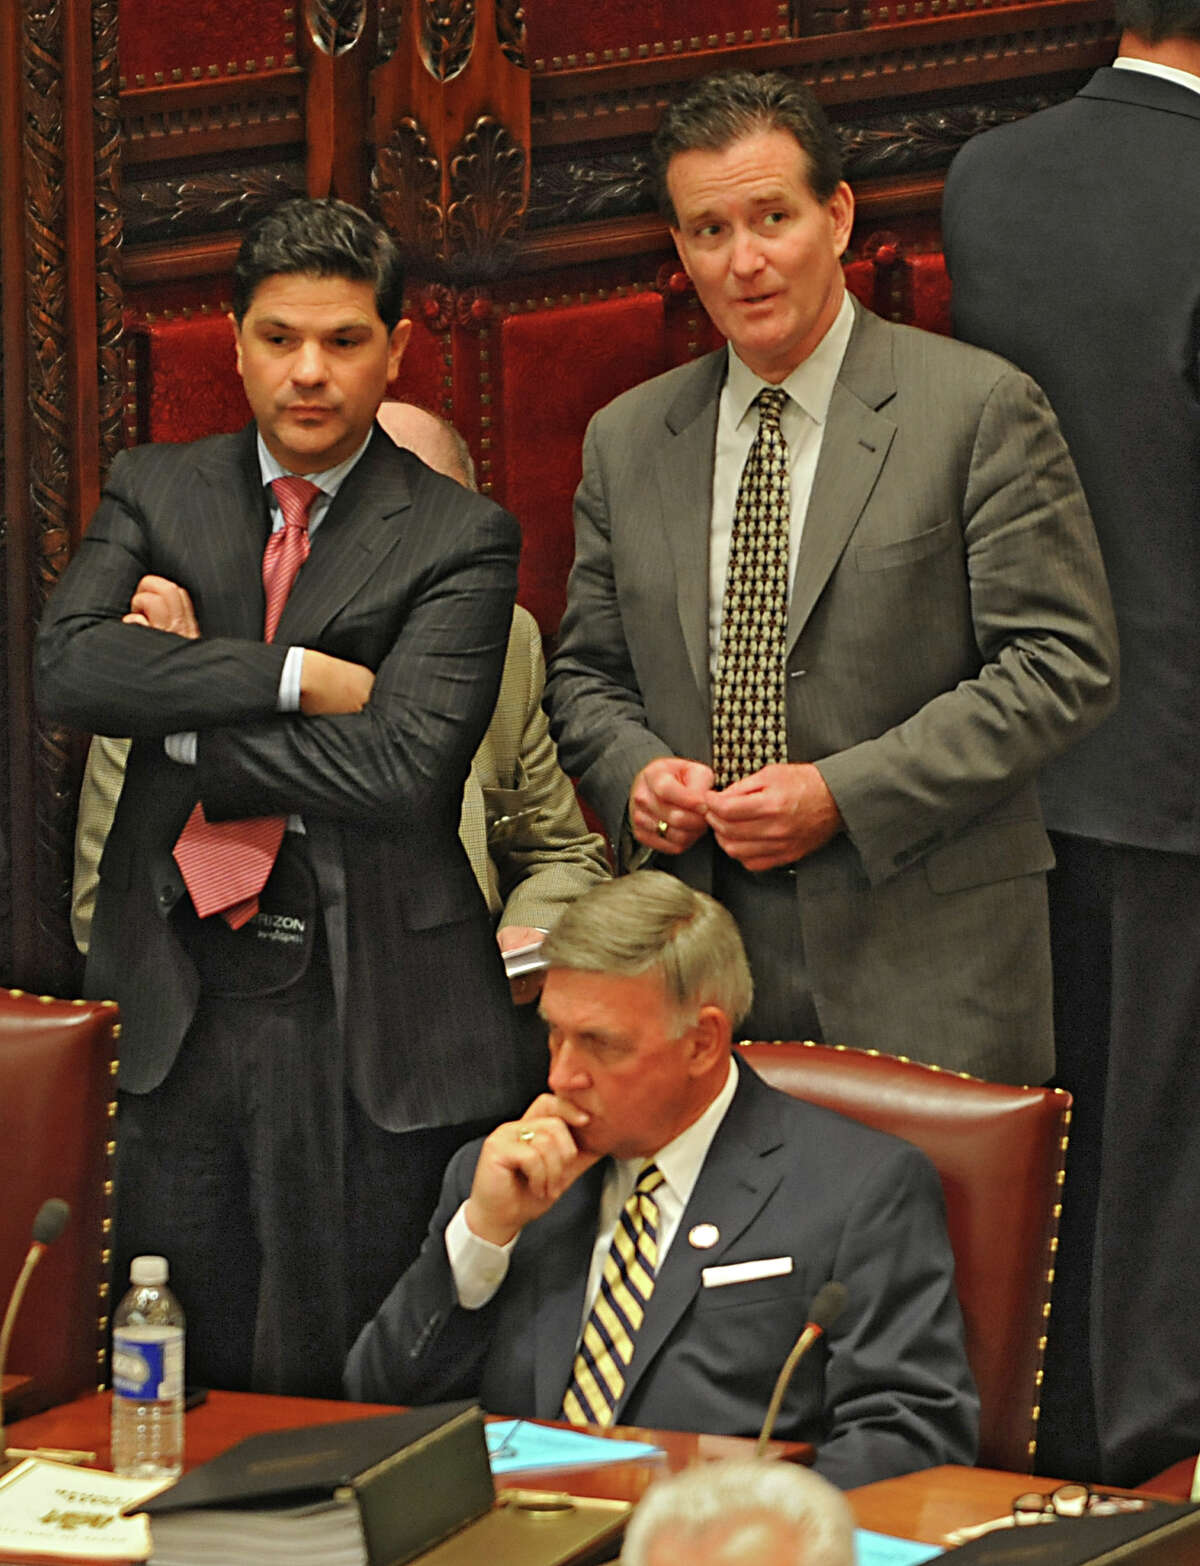 Senators George Amedore, left, John Flanagan and Rich Funke, sitting, are seen as members of the New York State Senate gather for session in the senate chamber at the Capitol on Monday, May 4, 2015 in Albany, N.Y. (Lori Van Buren / Times Union)